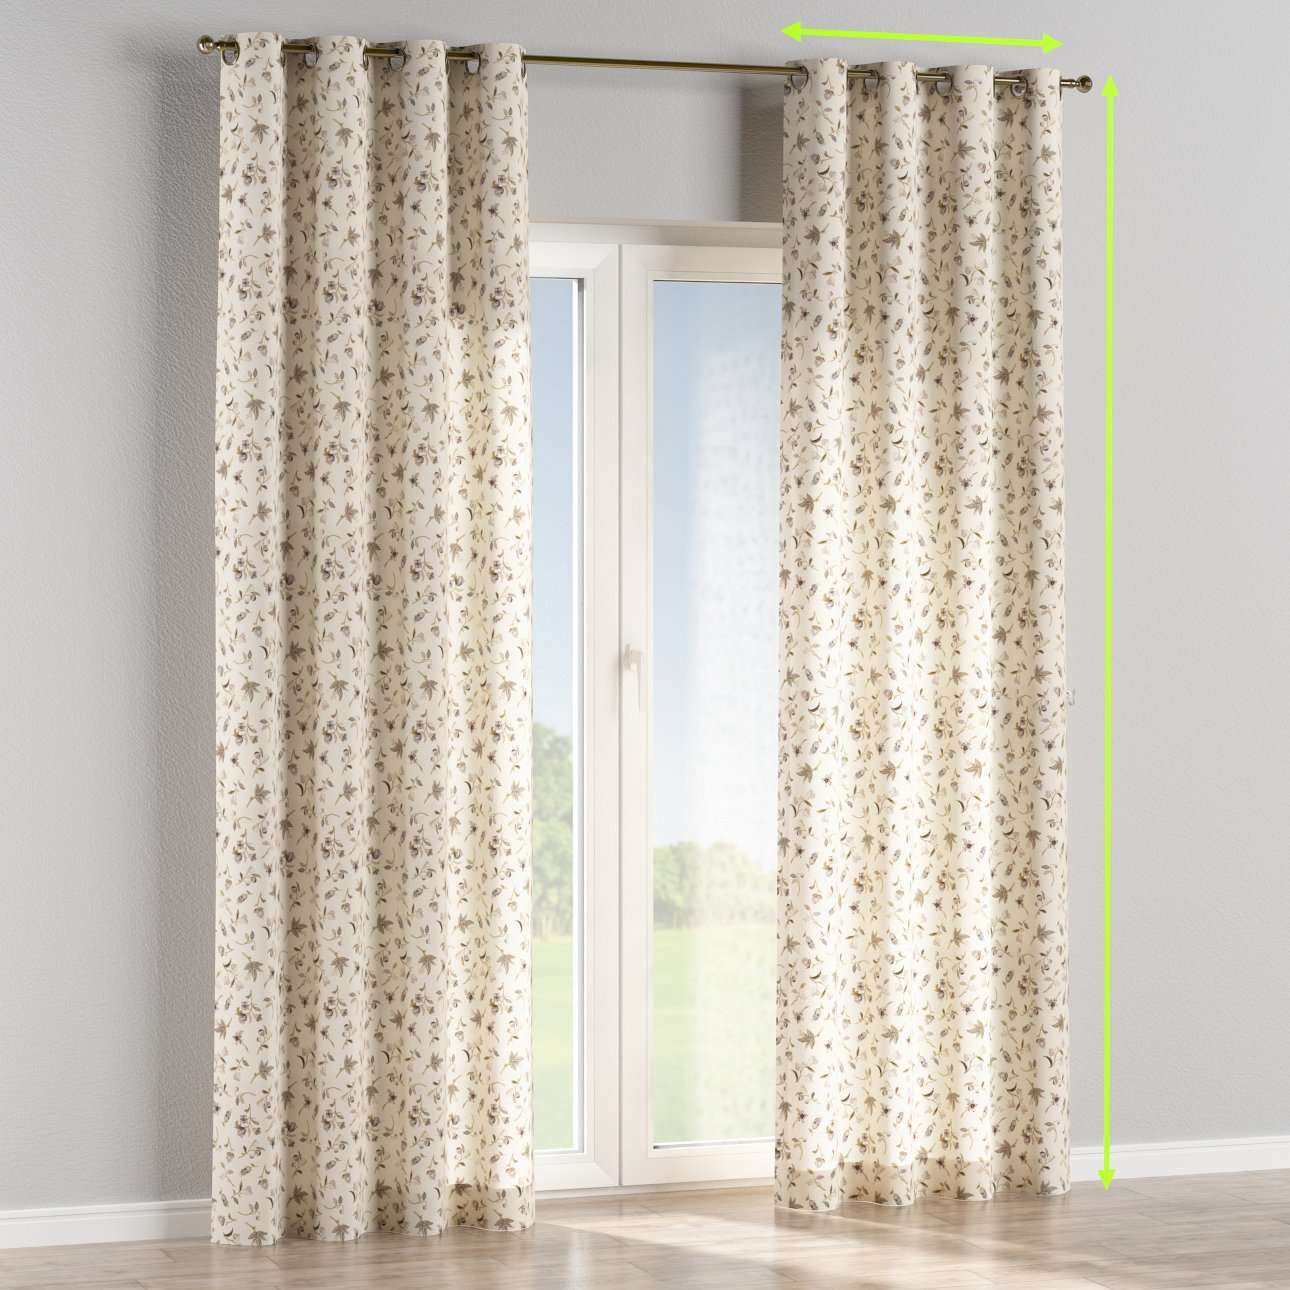 Eyelet curtains in collection Londres, fabric: 122-04